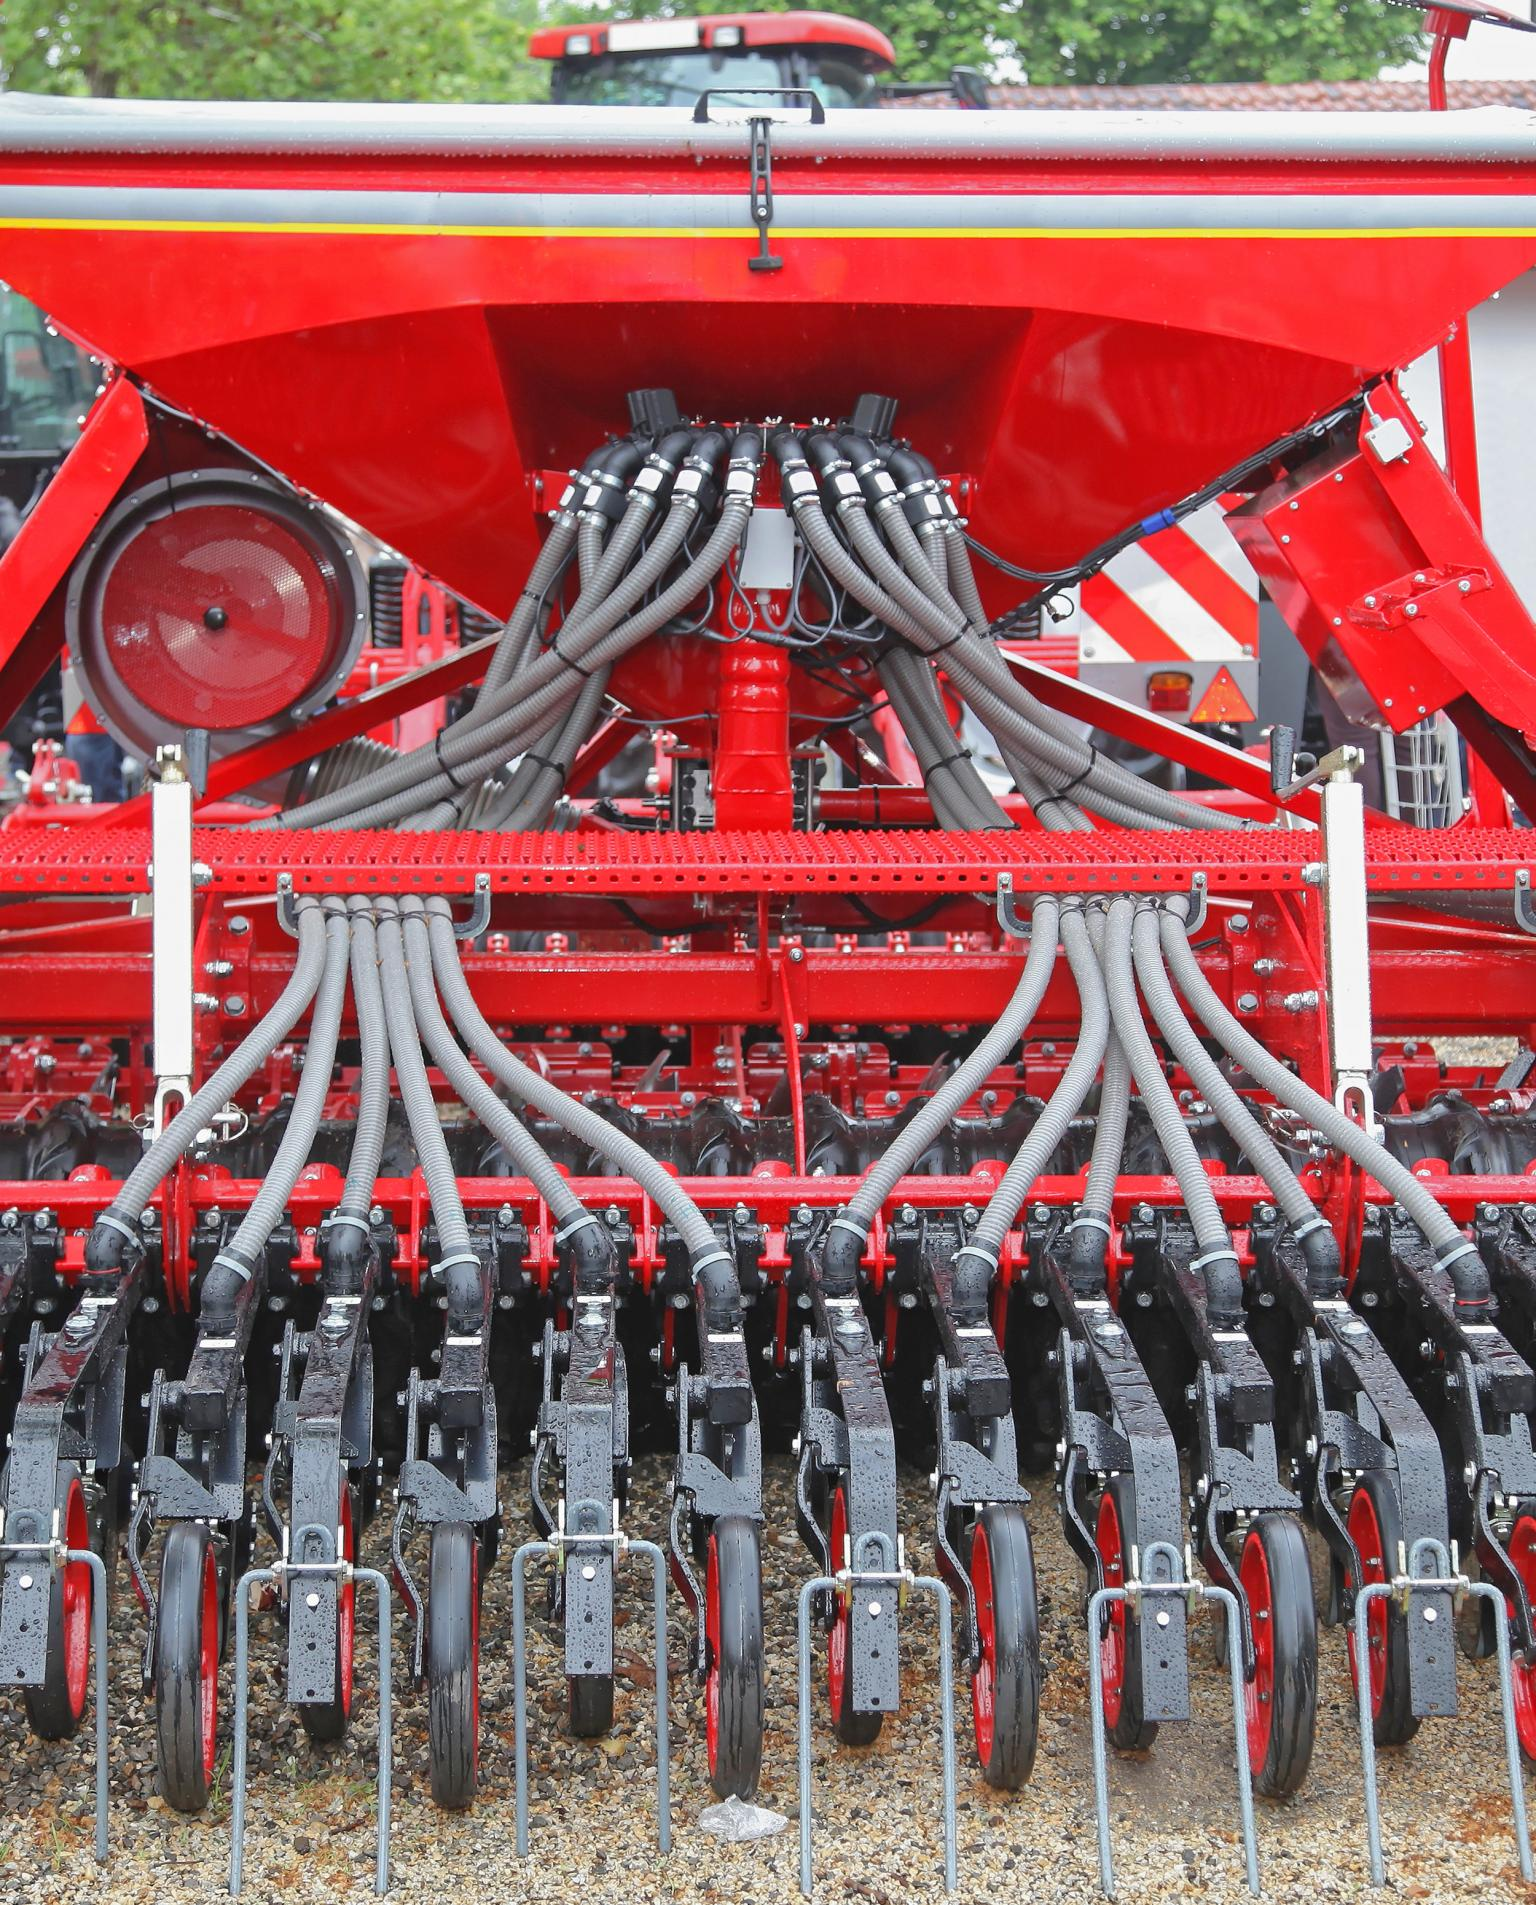 Industrial and agricultural machinery manufacture offers many conversion opportunities